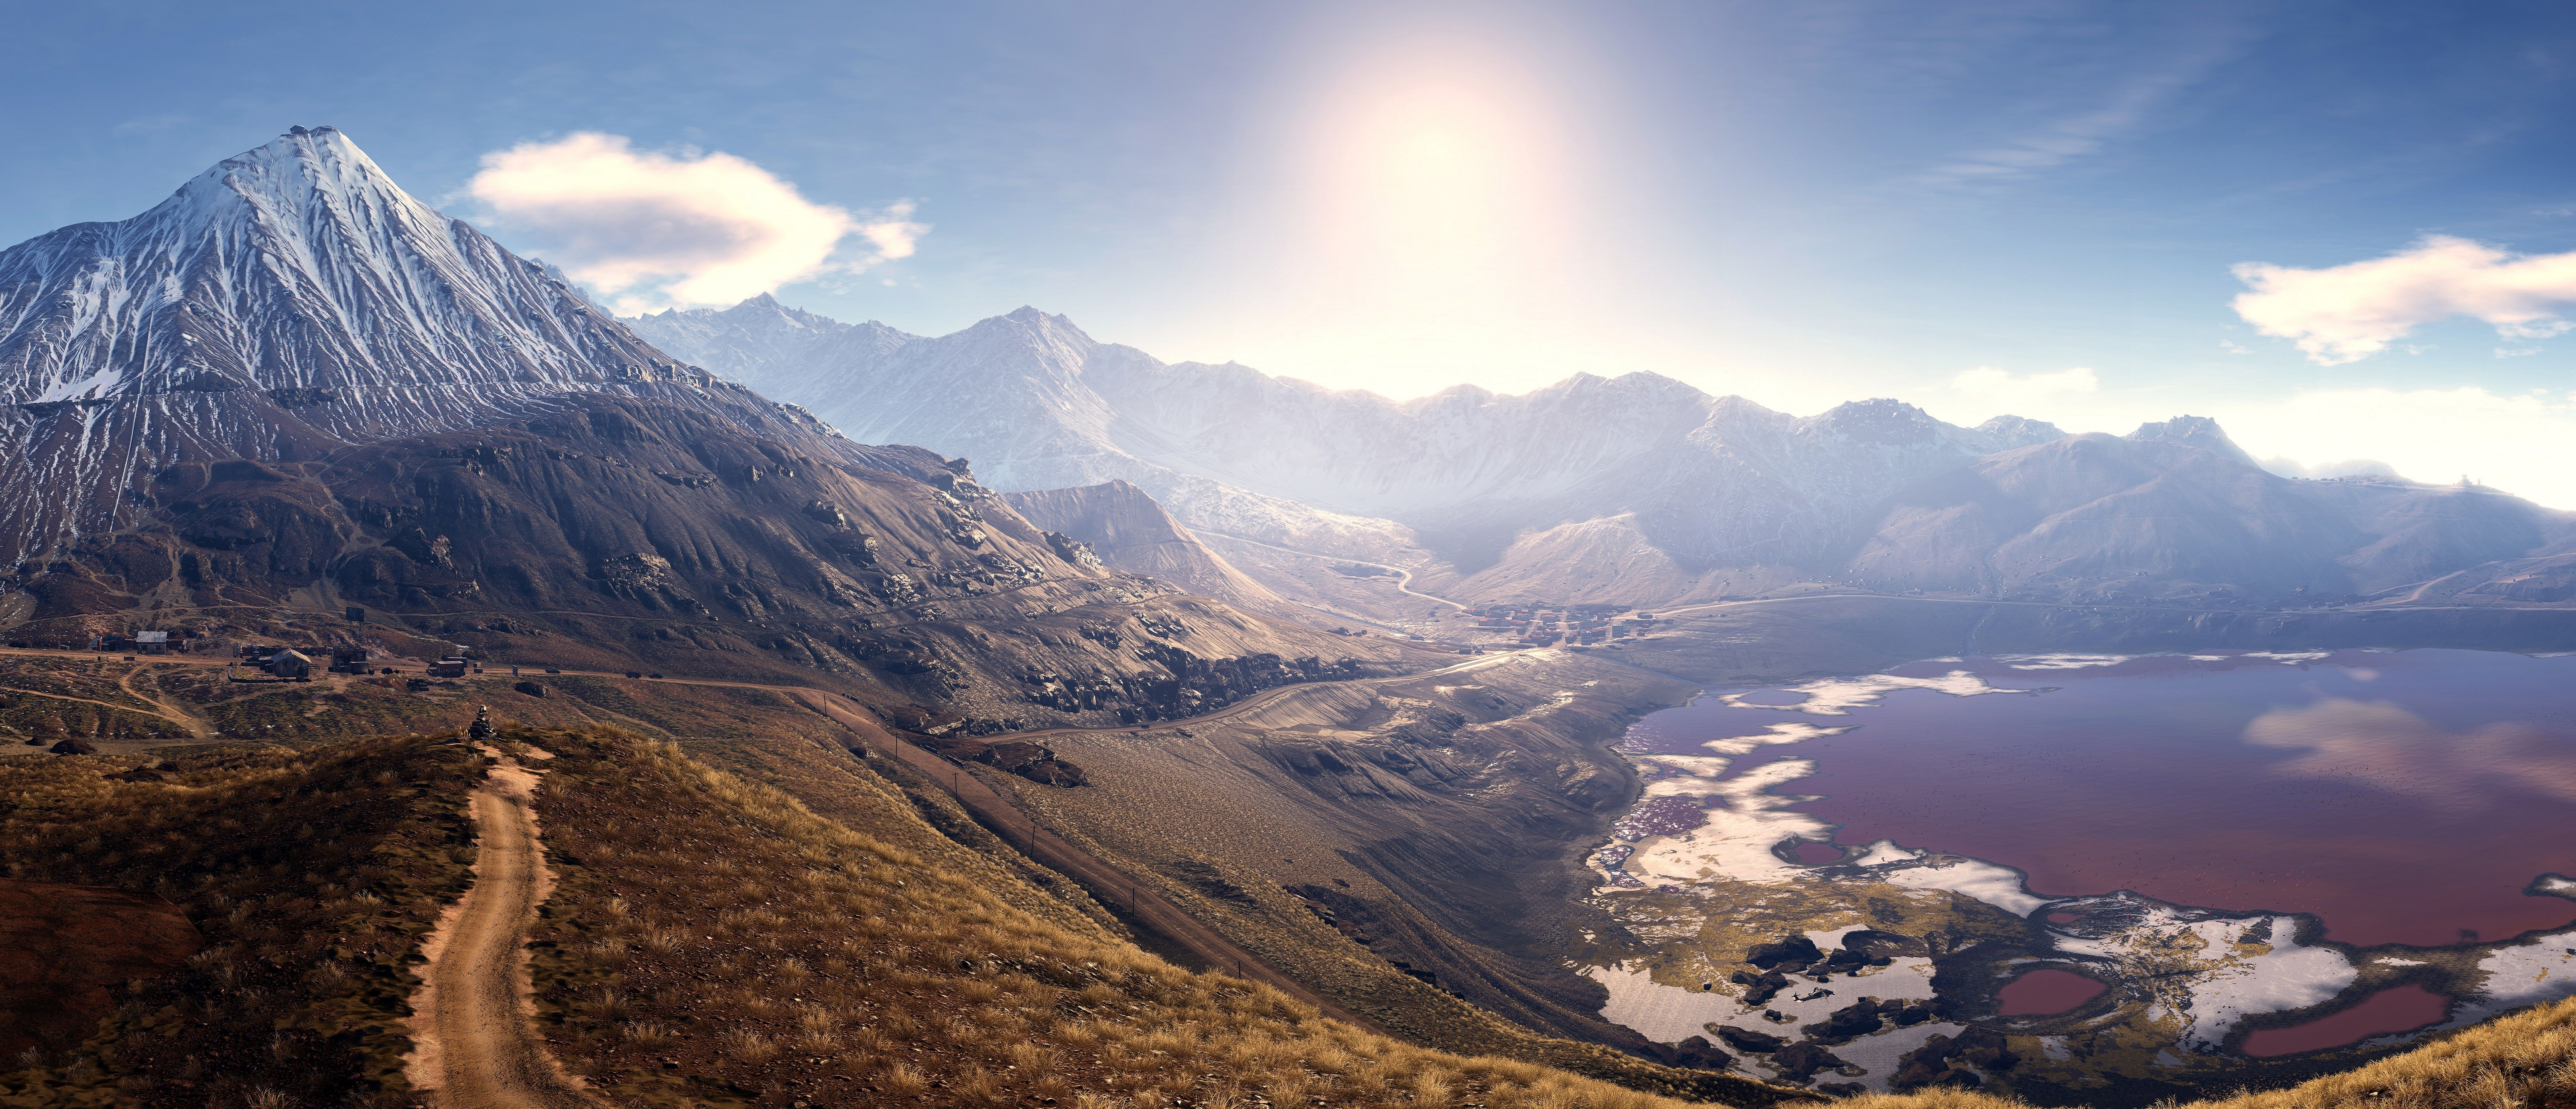 Tom Clancy S Ghost Recon Wildlands Wallpapers Top Free Tom